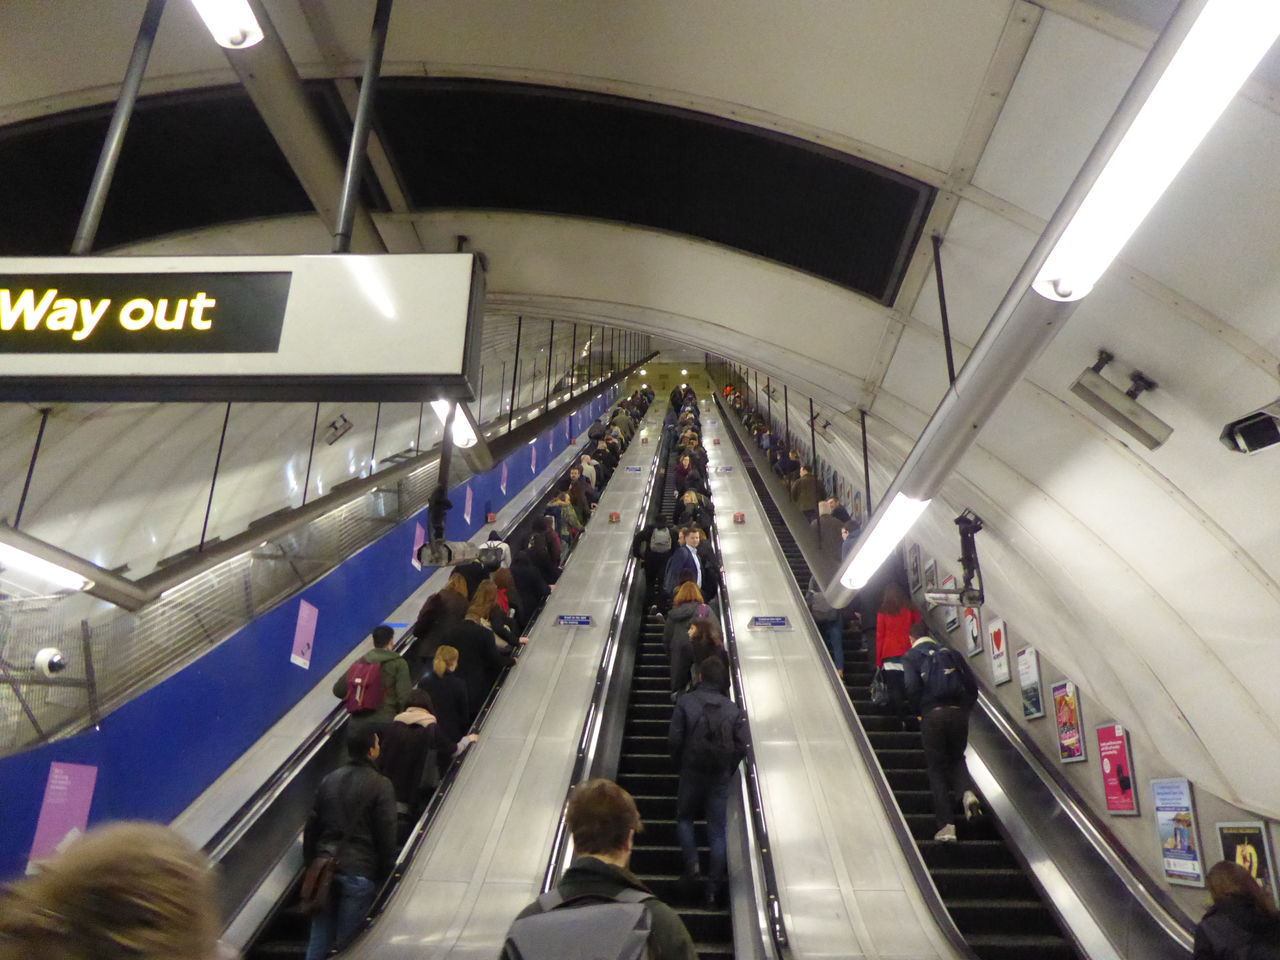 large group of people, transportation, escalator, indoors, real people, men, public transportation, subway station, steps and staircases, passenger, women, high angle view, modern, transportation building - type of building, illuminated, lifestyles, convenience, travel, journey, commuter, subway train, technology, architecture, crowd, day, people